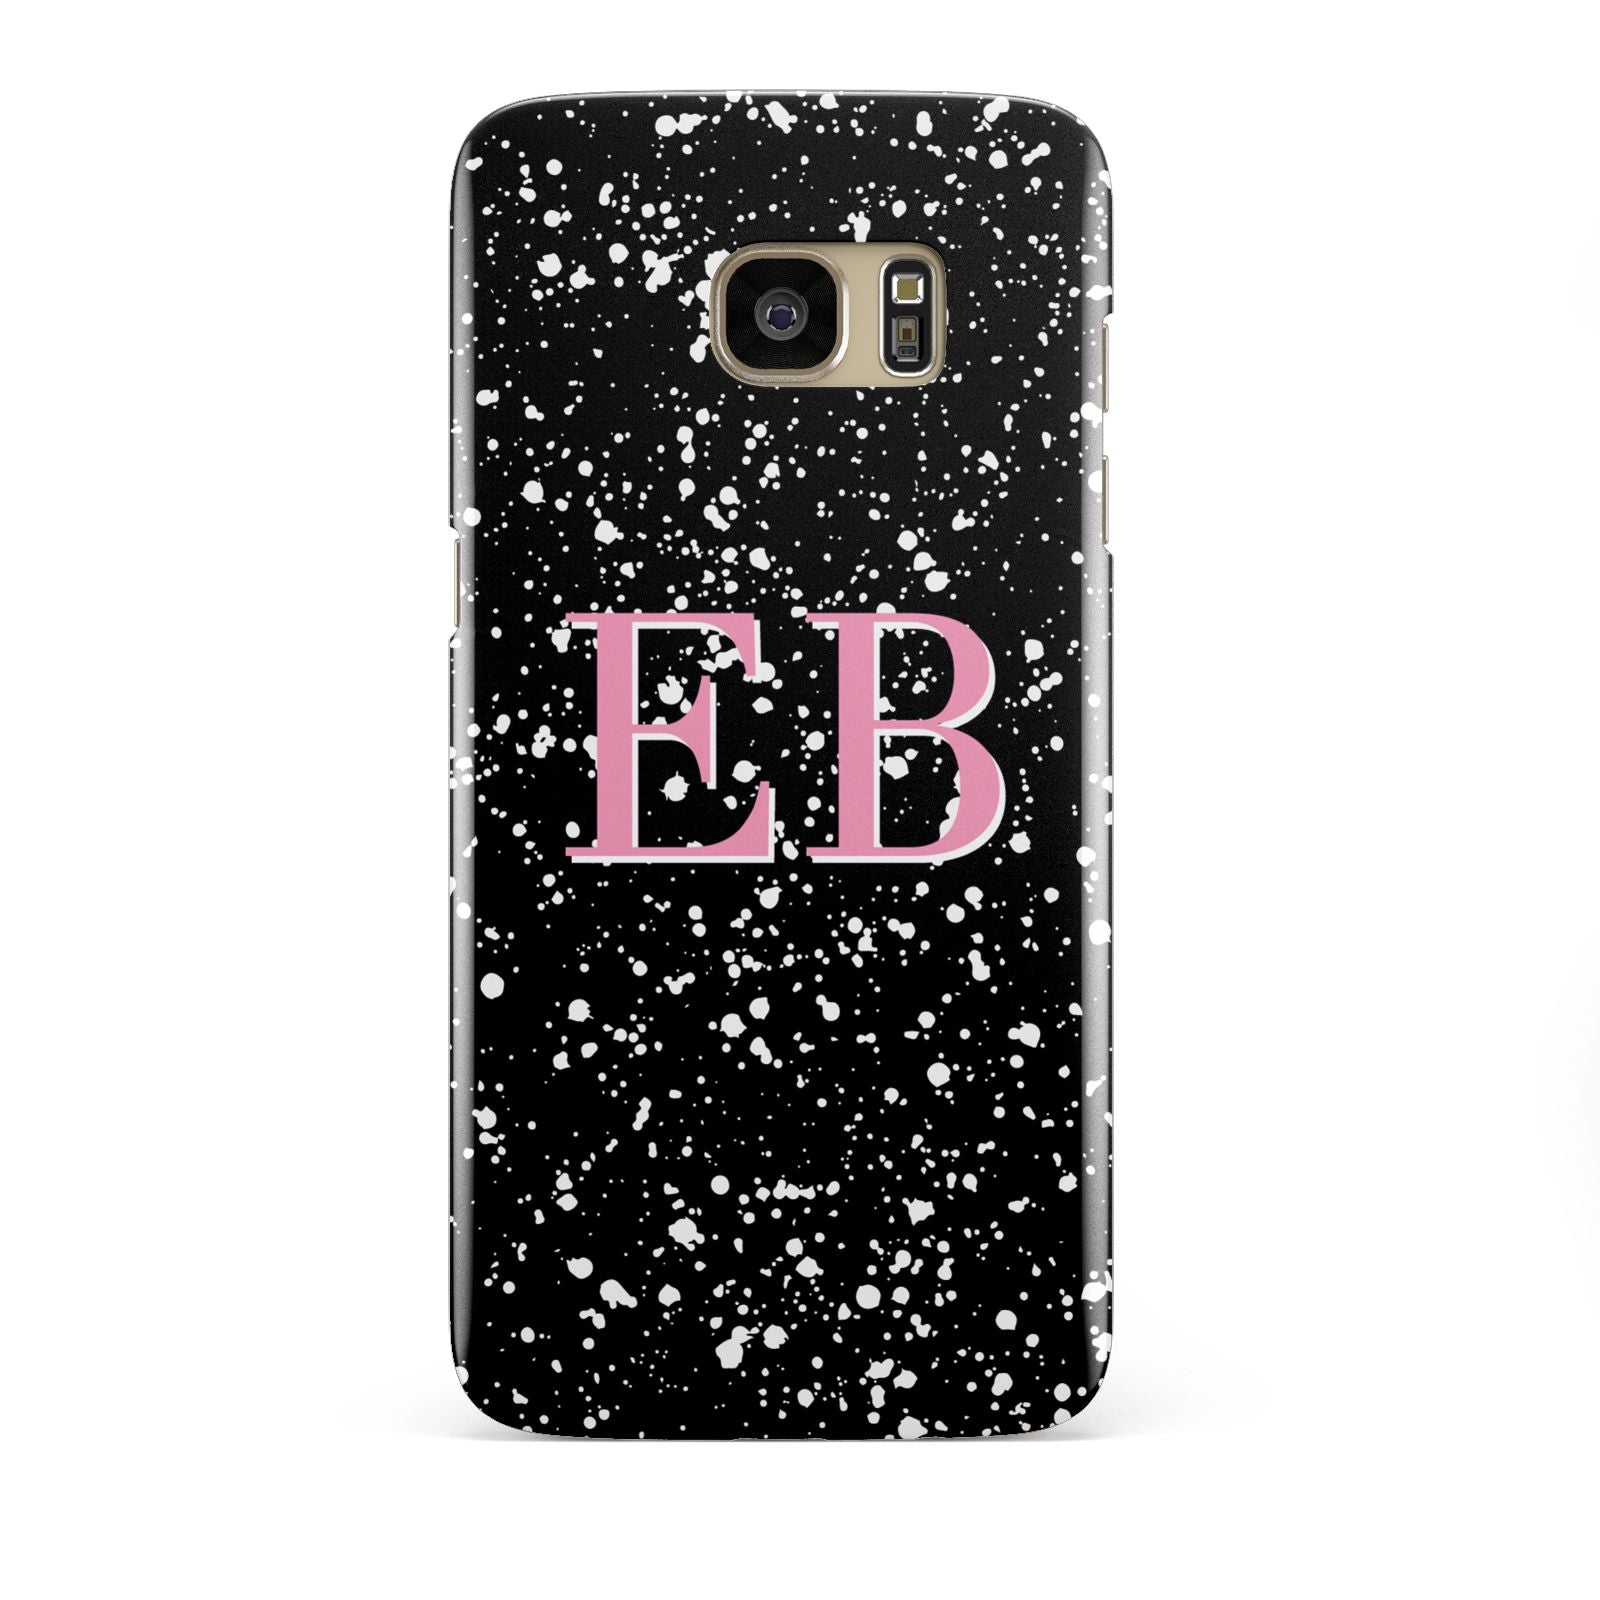 Personalised Black Ink Splat Initials Samsung Galaxy S7 Edge Case